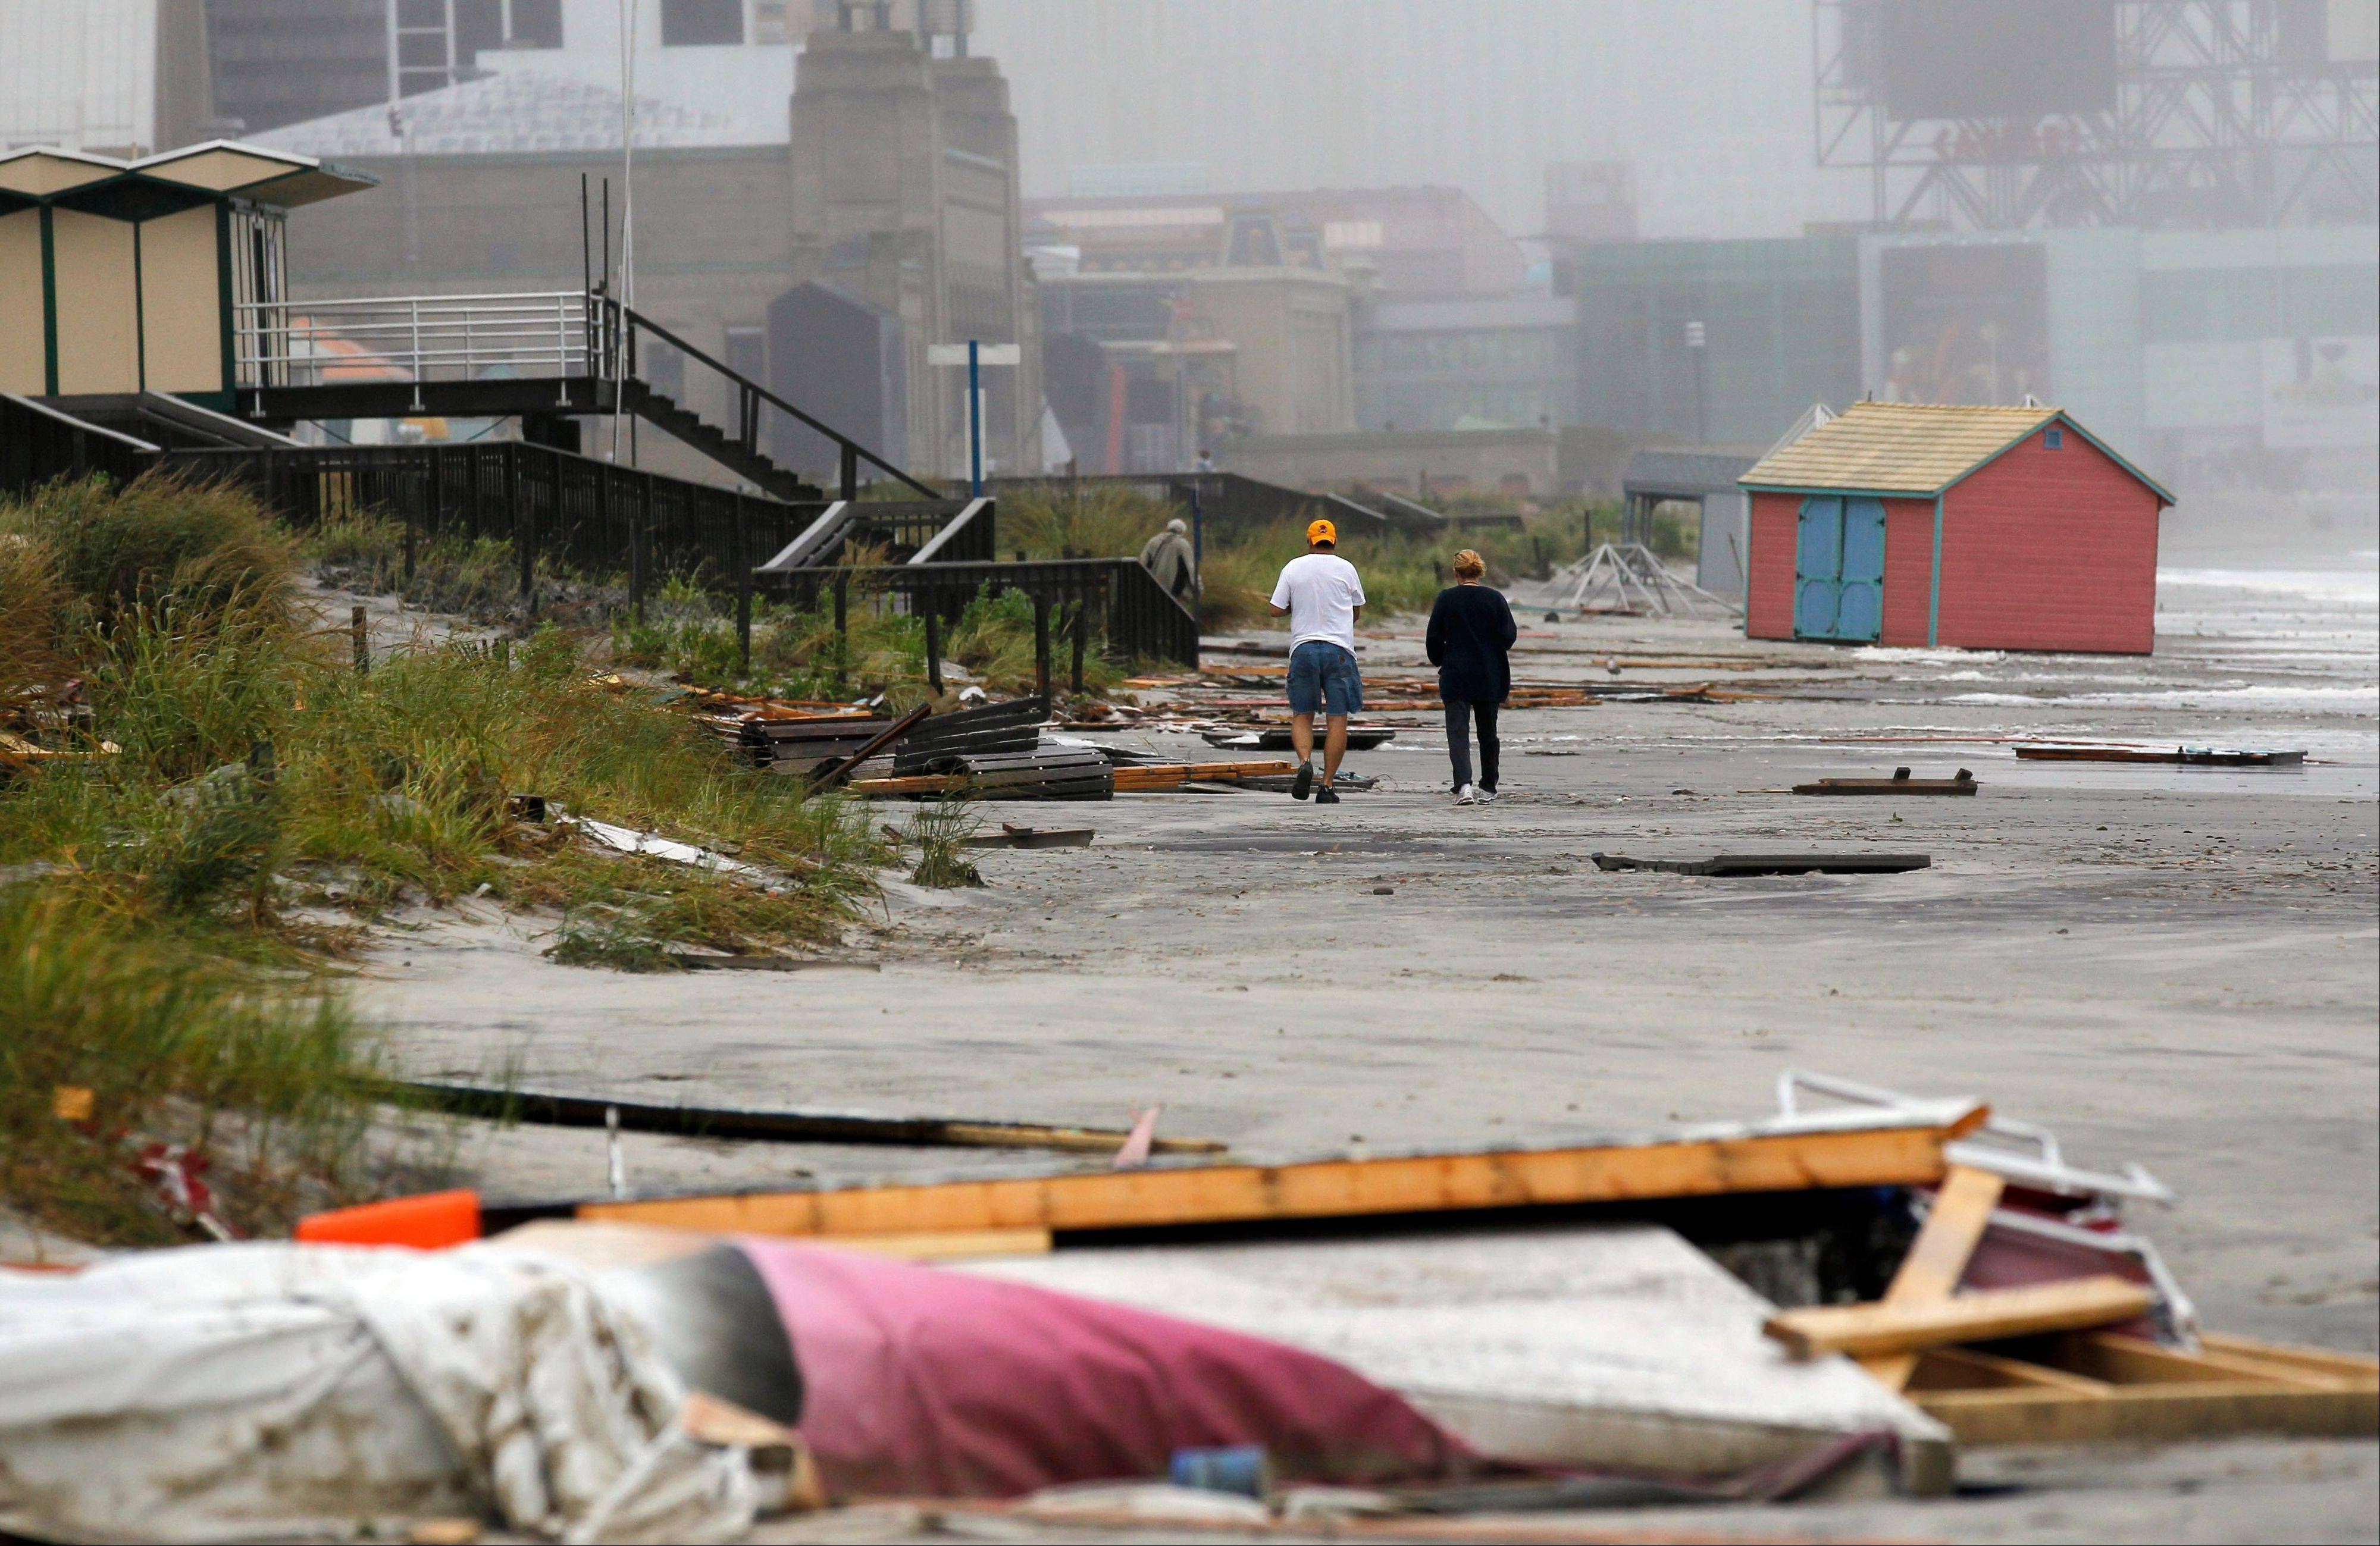 People along beach strewn with debris after Hurricane Irene swept the area, Sunday, Aug. 28, 2011, in Atlantic City, N.J.